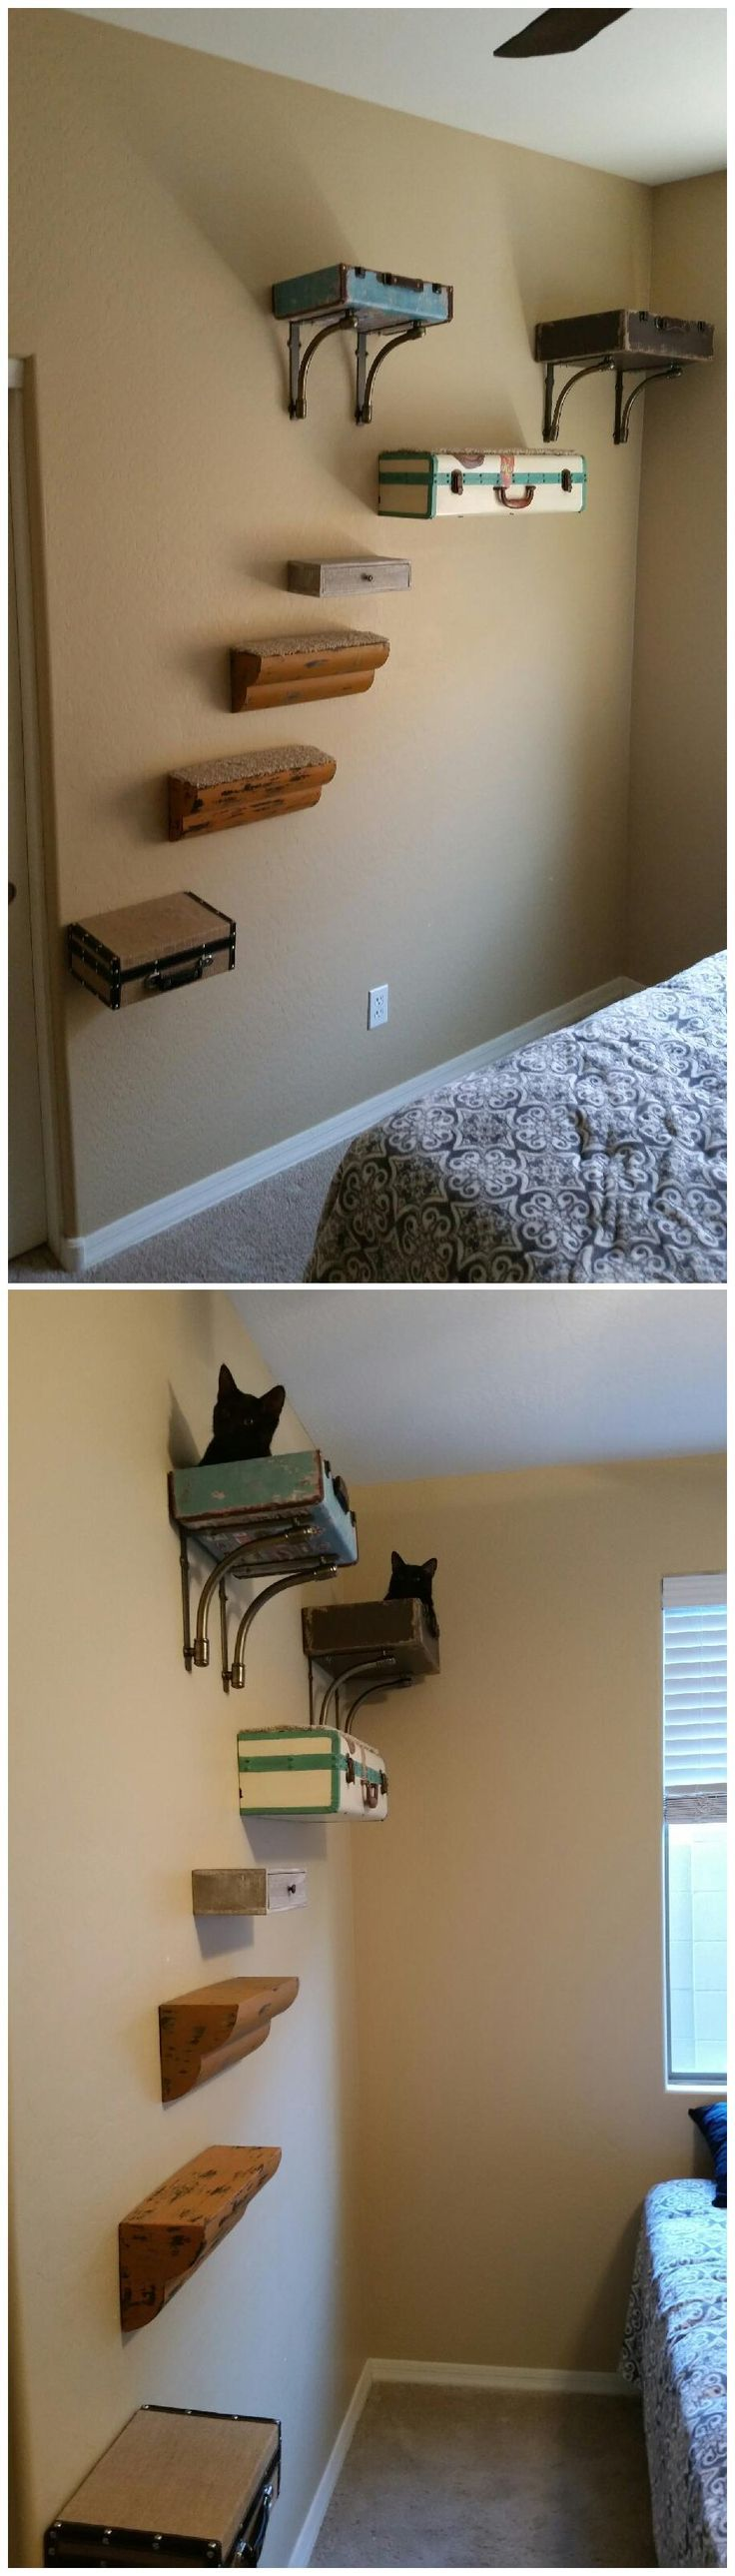 Catification Wall Suitcase Beds Shelves Stairs Cat Tree   Tap The Link Now  To See All